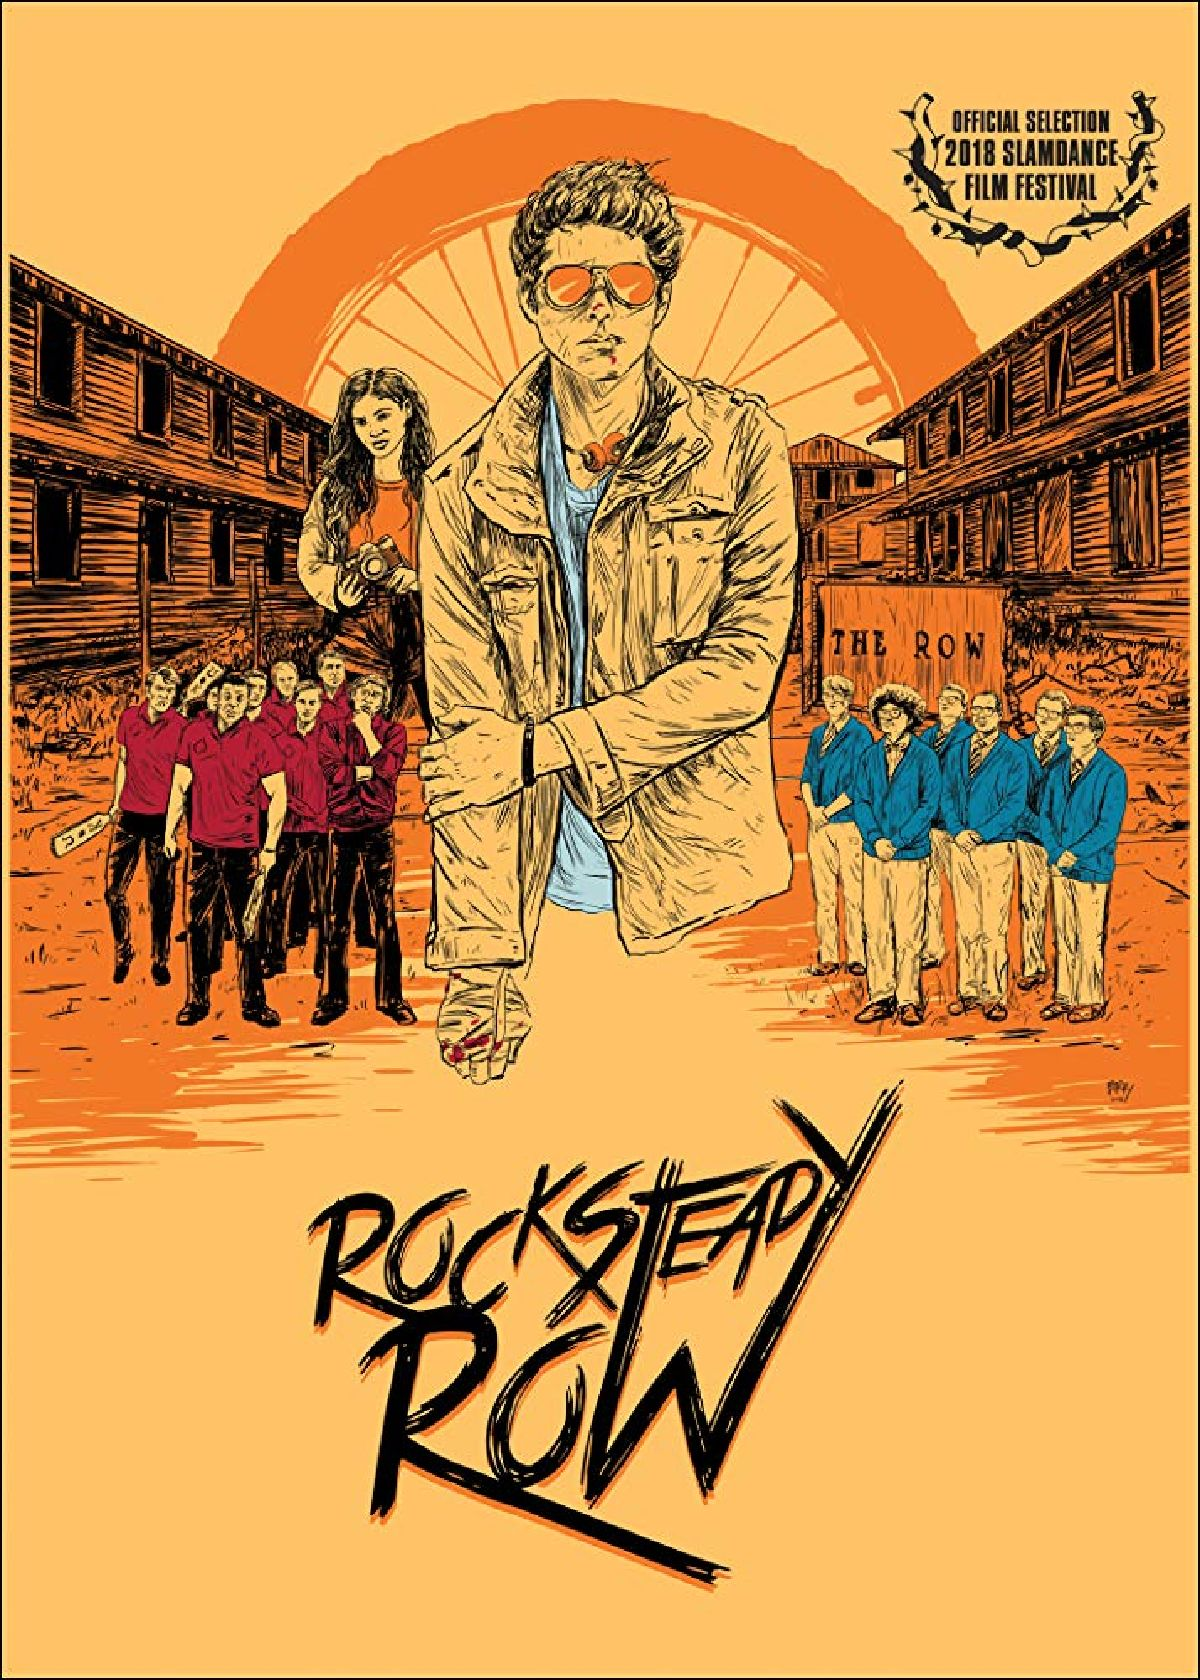 'Rock Steady Row' movie poster